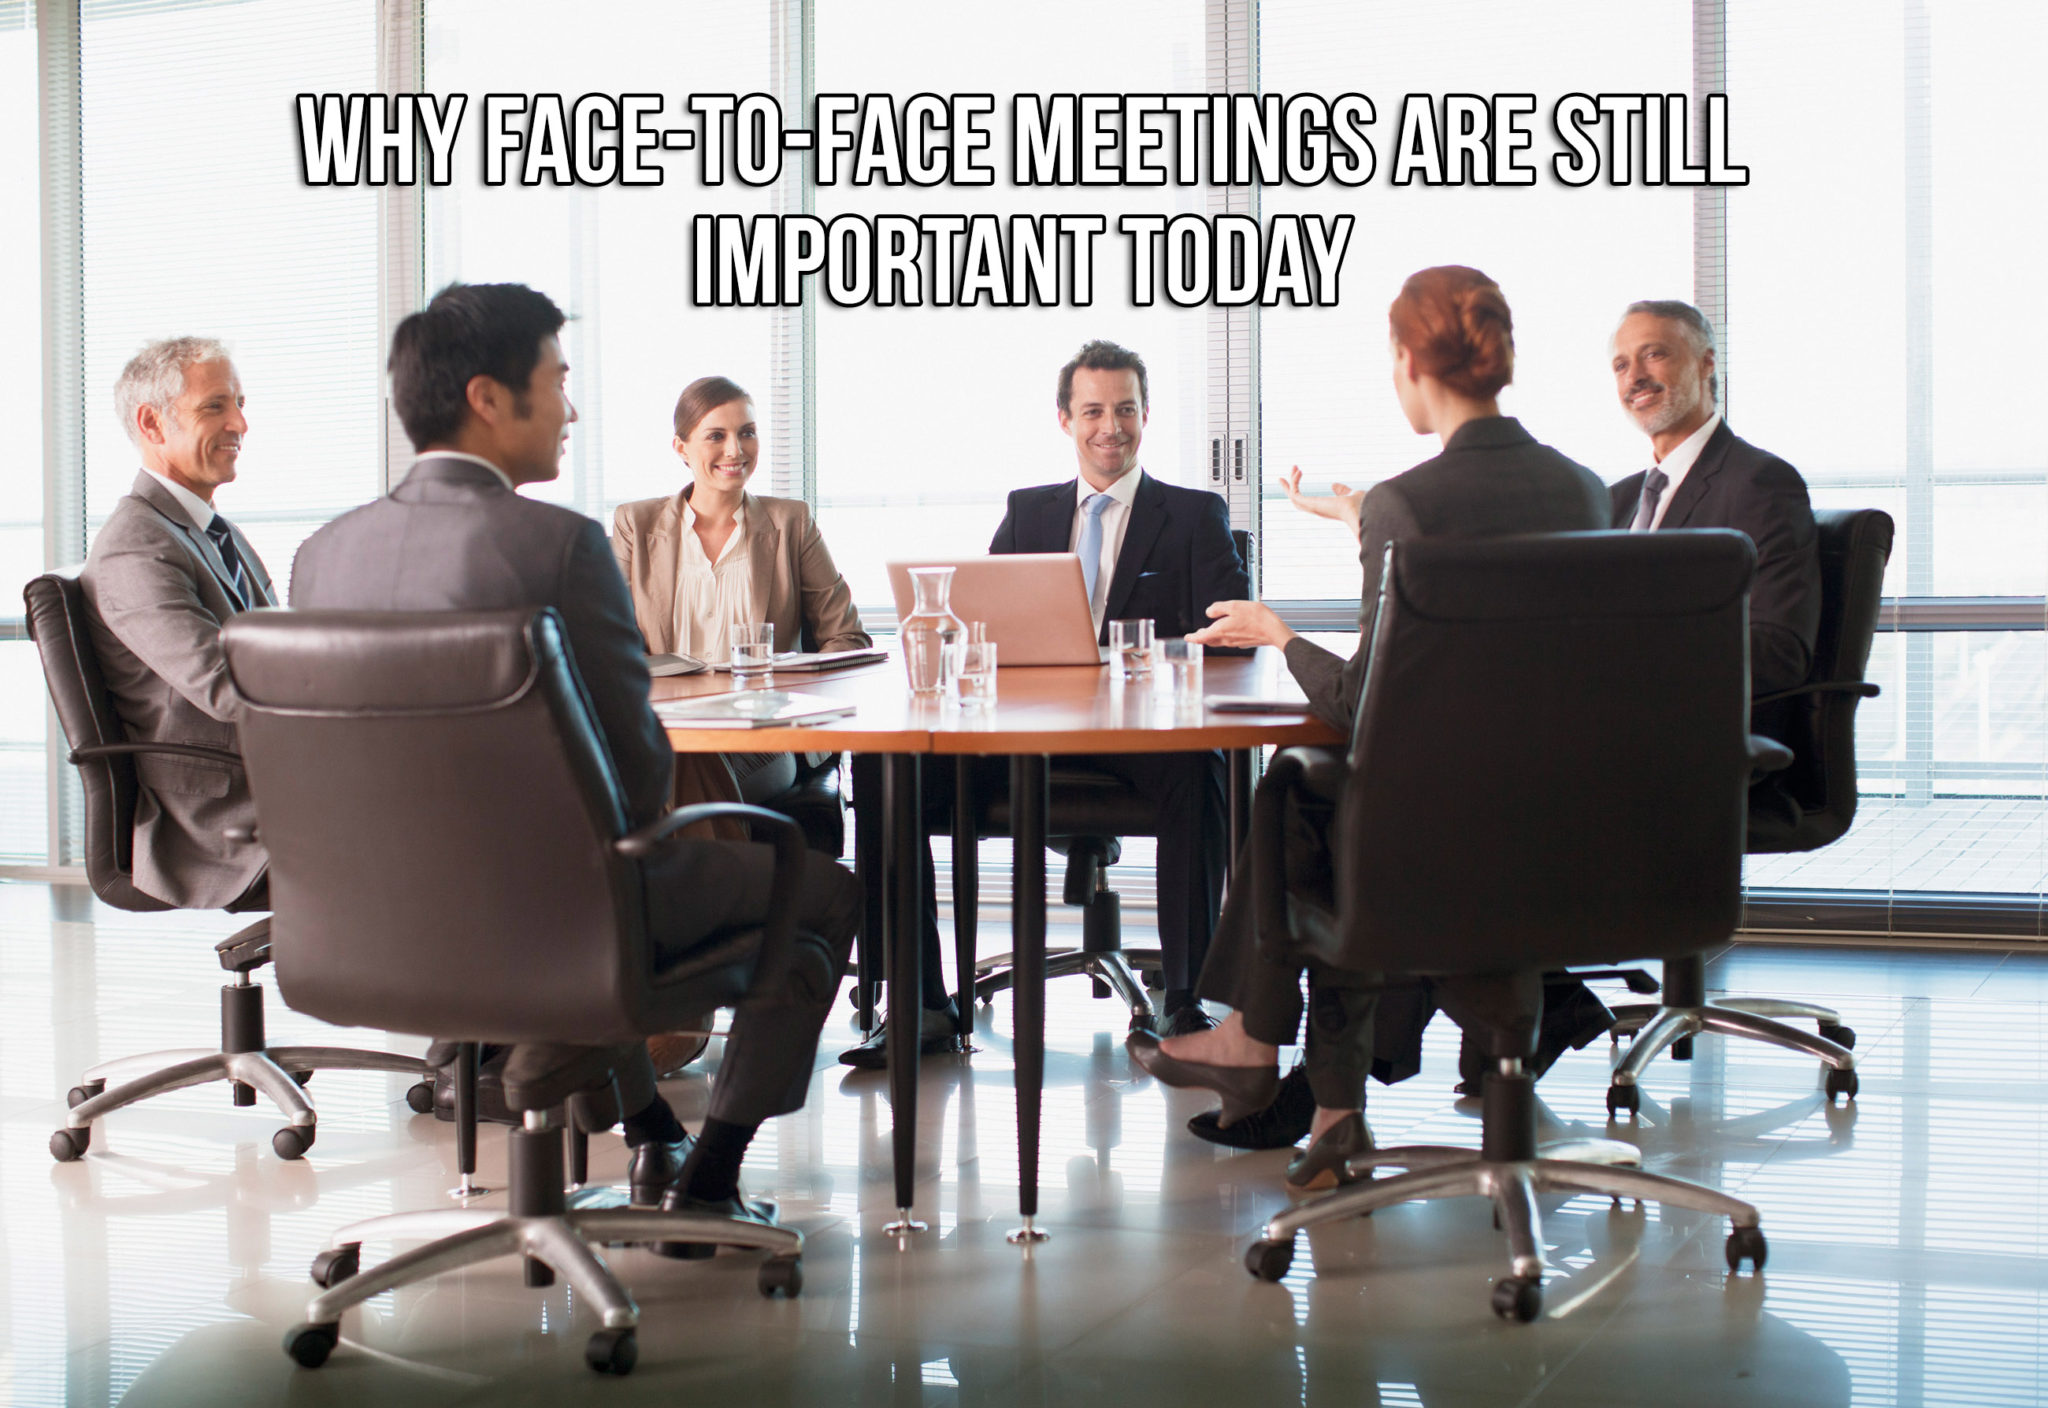 Why Face-to-Face Meetings are still Important Today